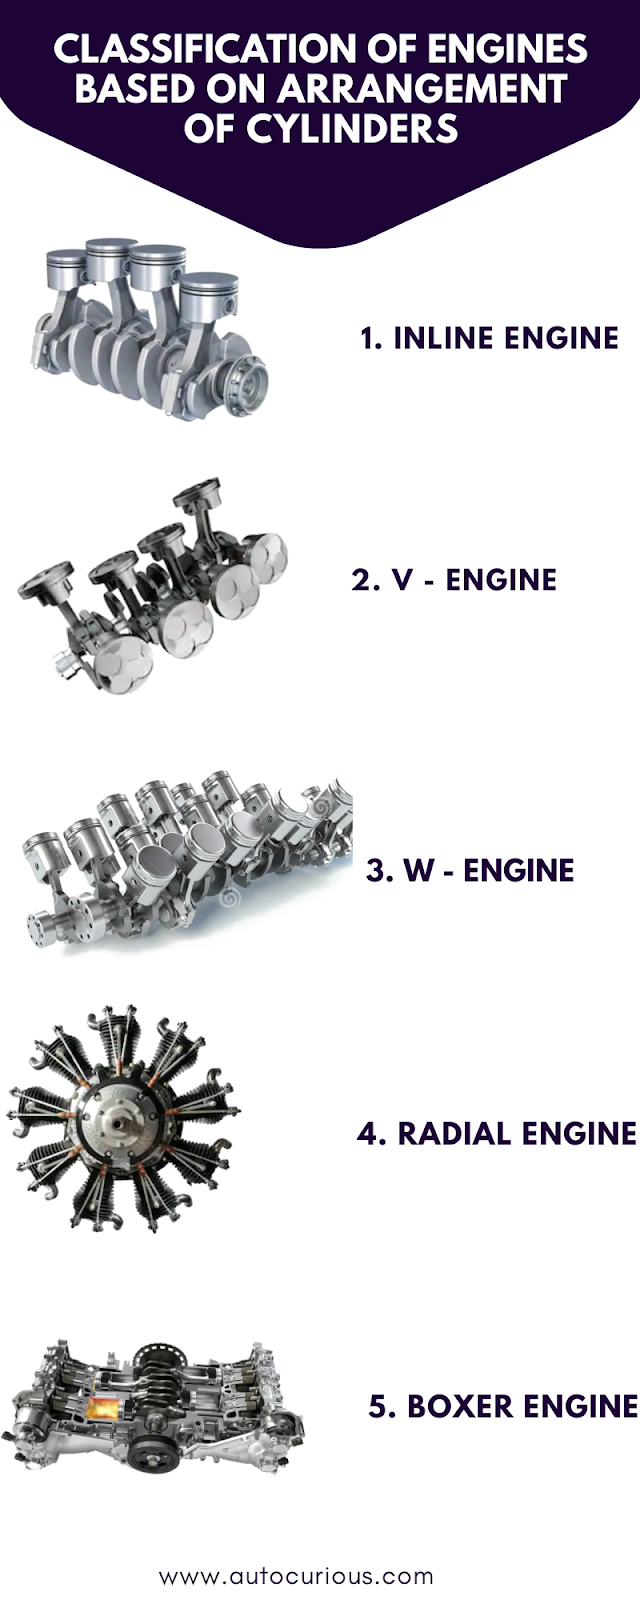 Classification of Engines